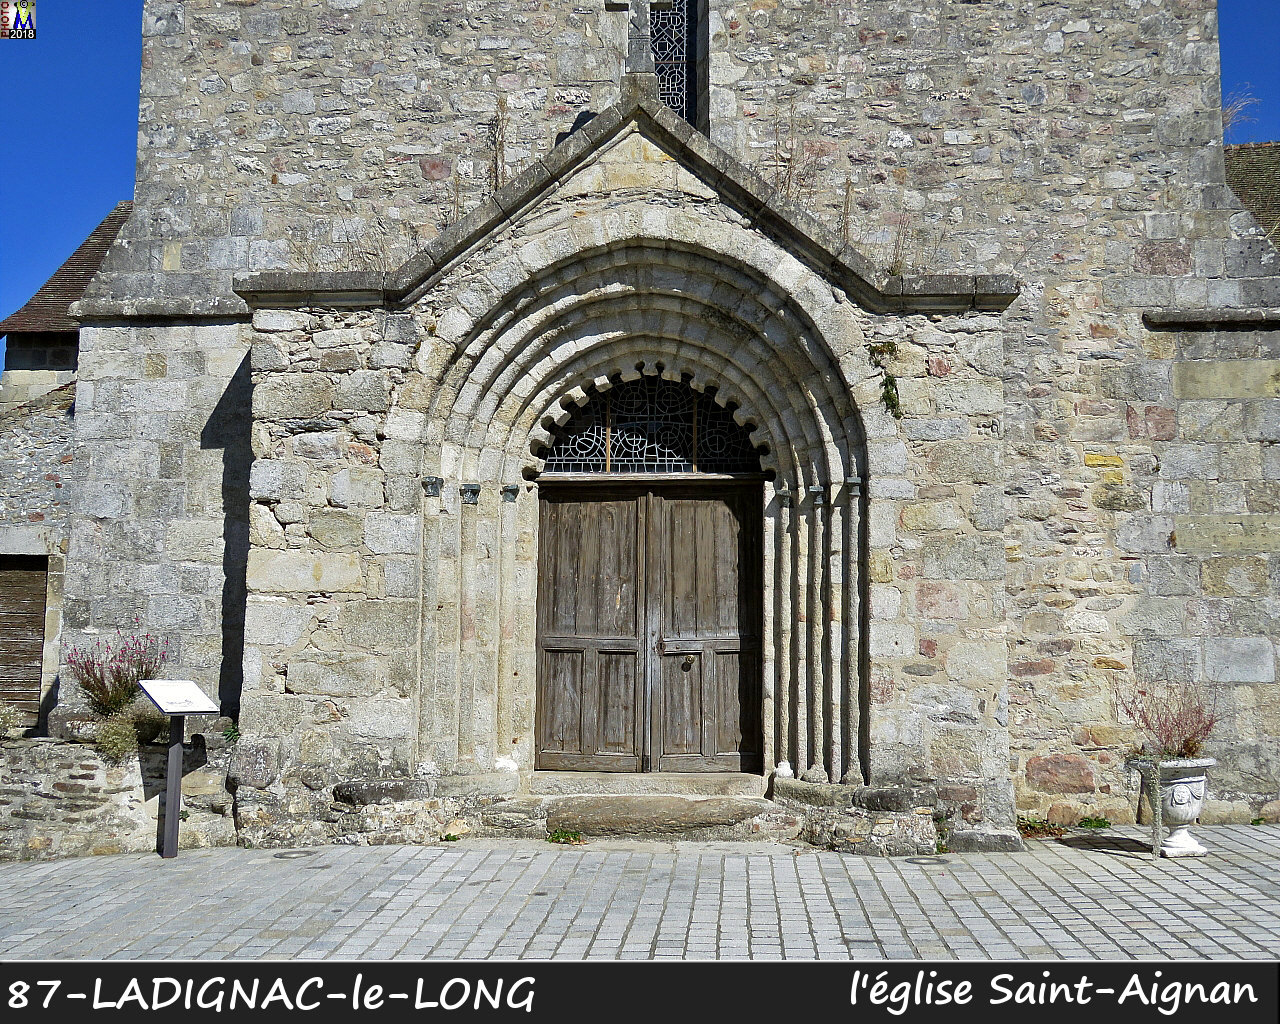 87LADIGNAC-LONG_eglise_110.jpg